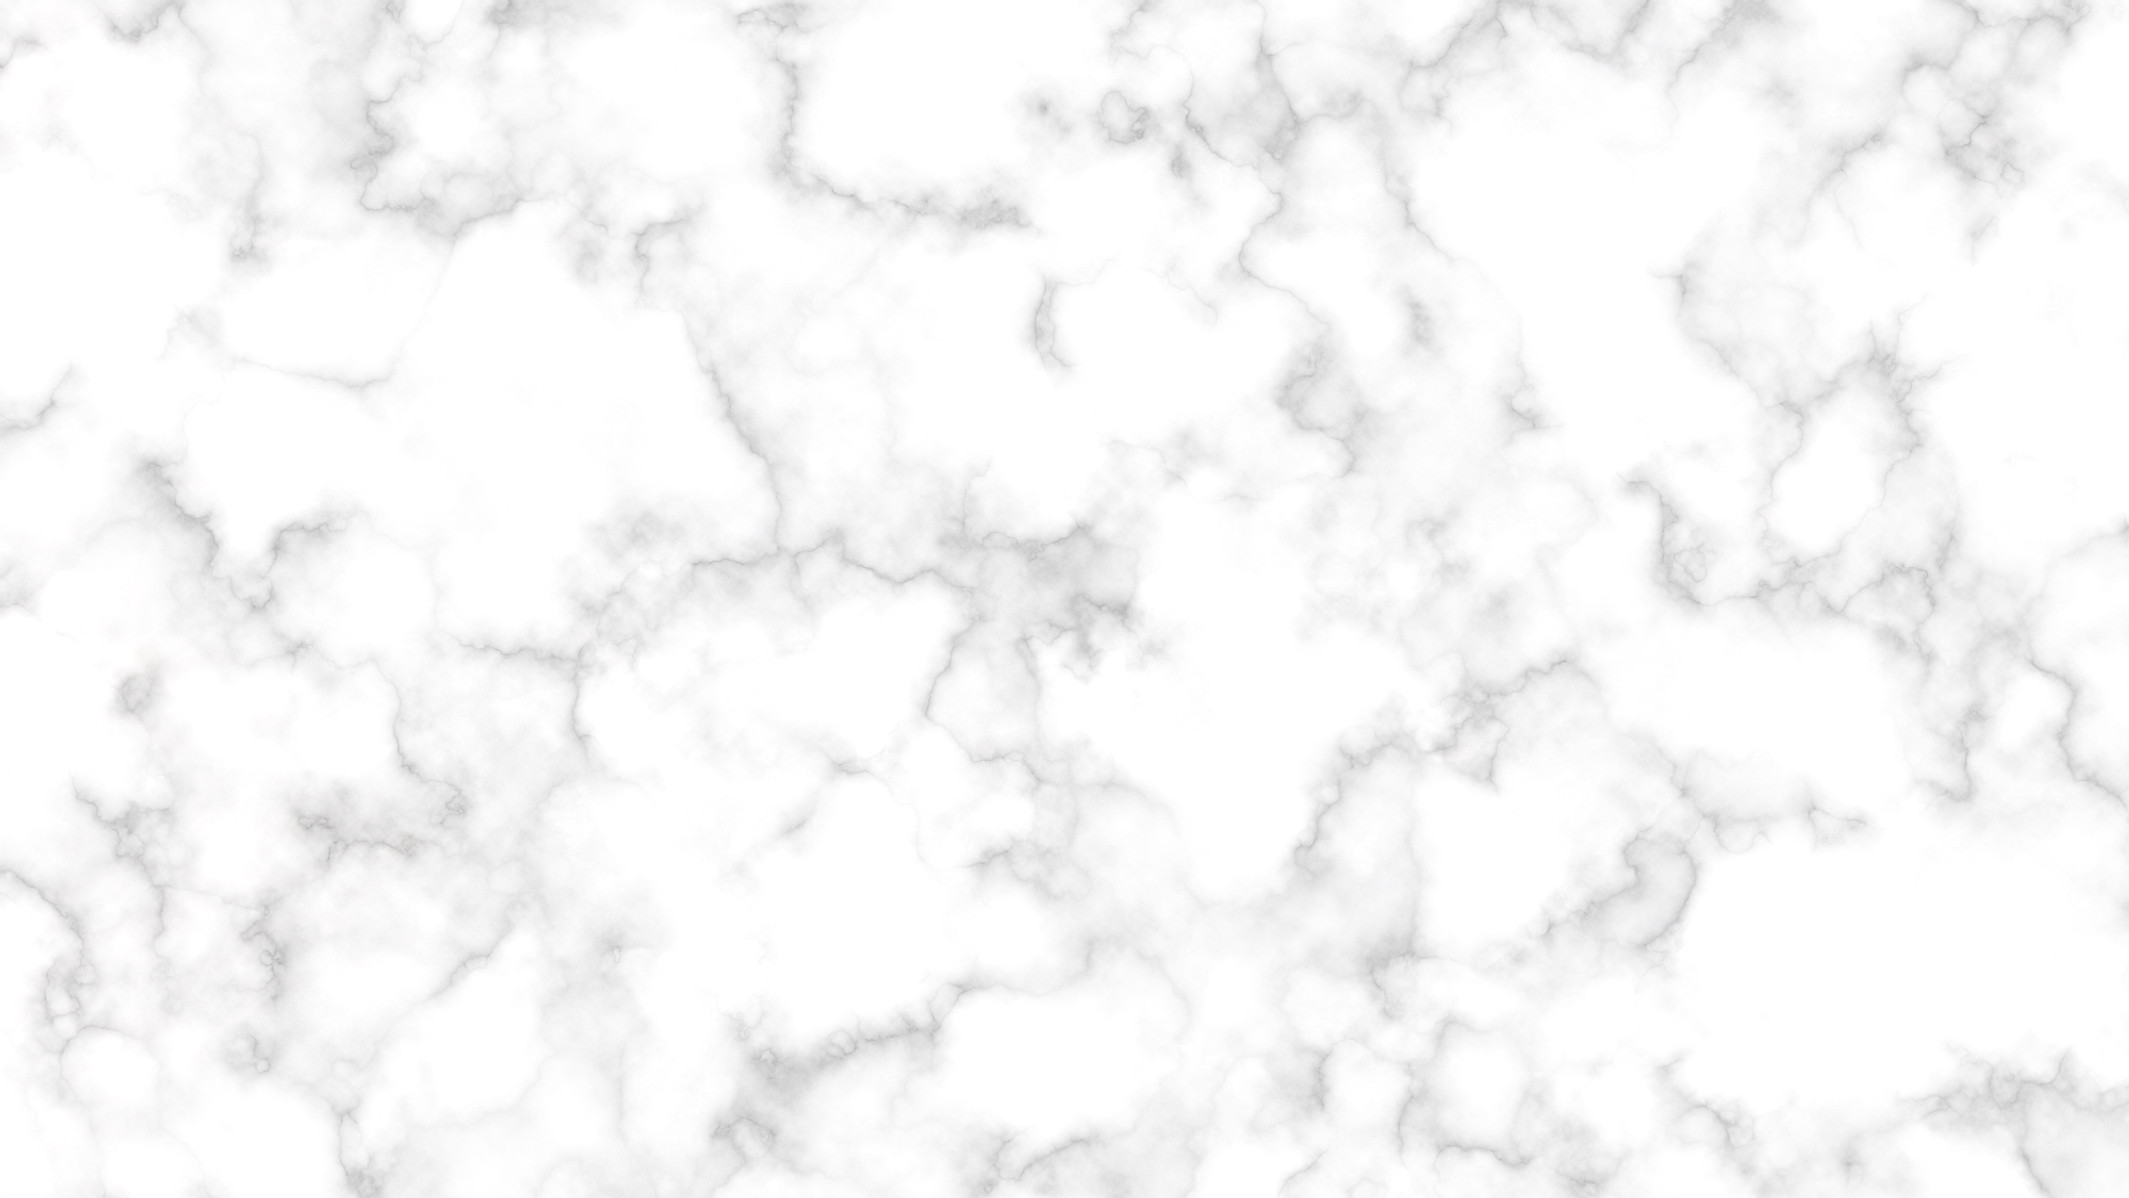 Canva - Marble Texture Pattern.jpg